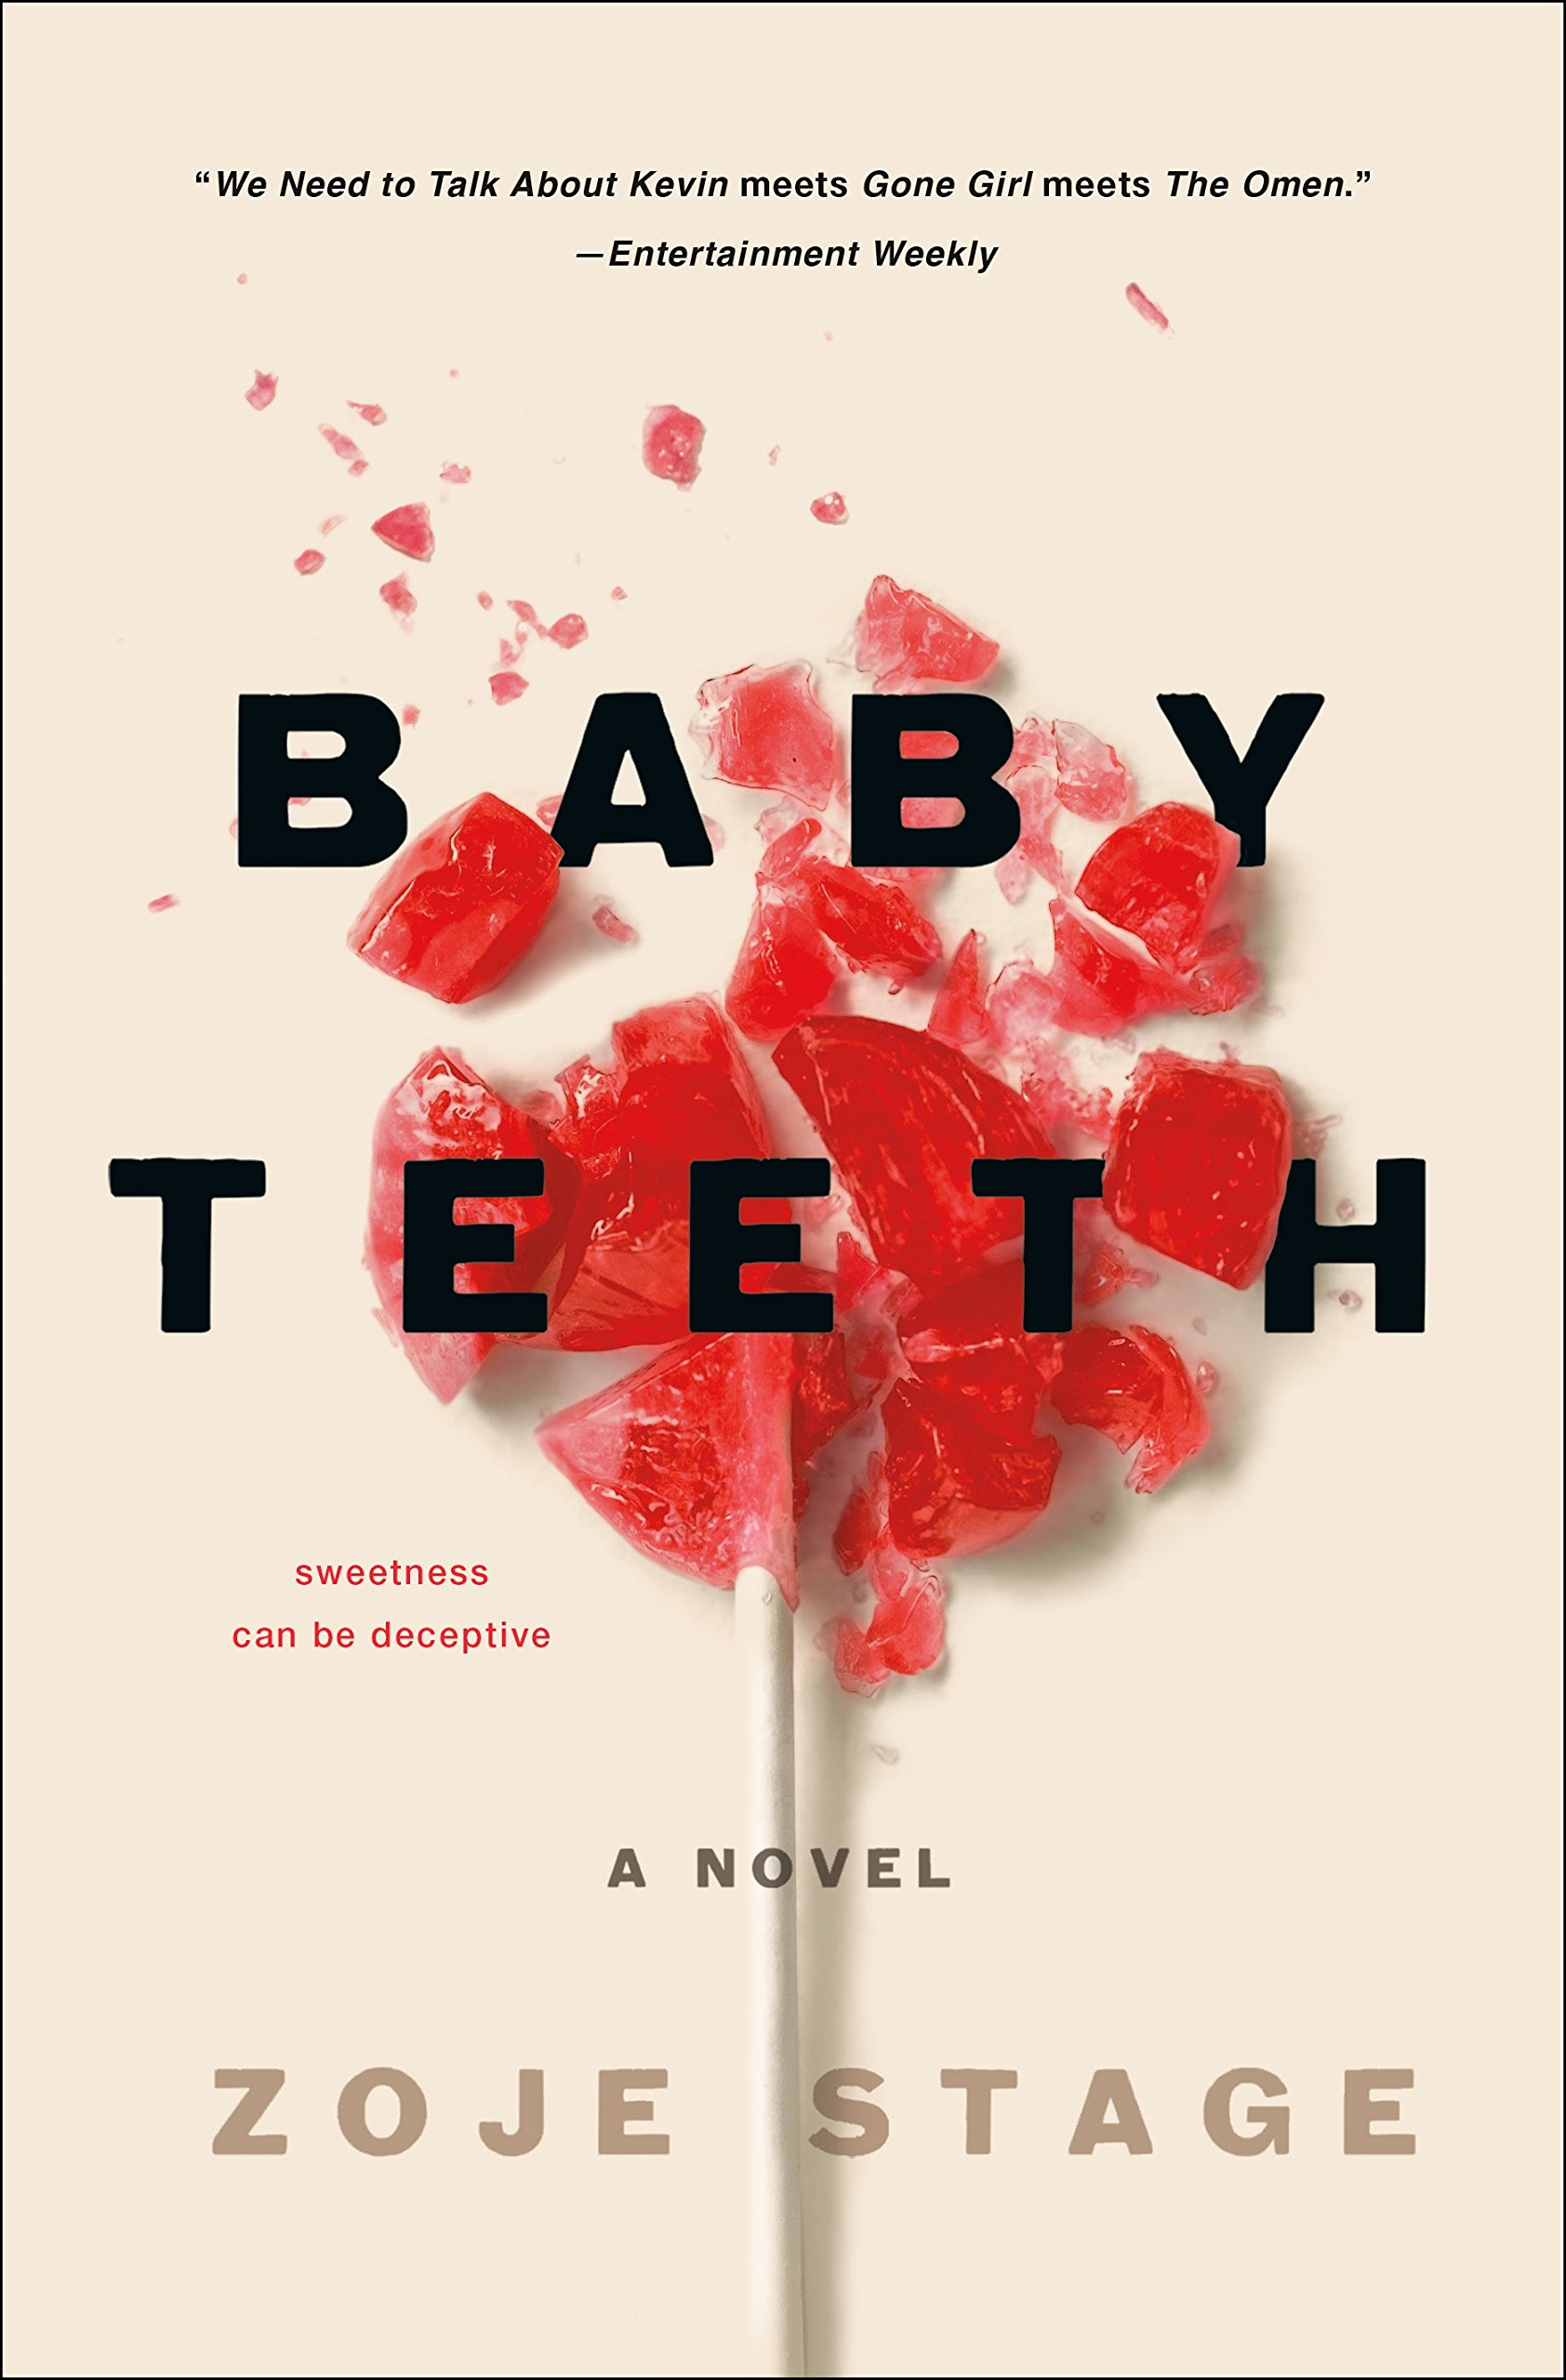 baby teeth book novel kids kid child hildren parent parenting psychologu thriller suspense horror psychopath witch wthes burning mom dad daughter hanna review reviews pr friendly blog bloggers bok bloging reviewer list scary can't put down best